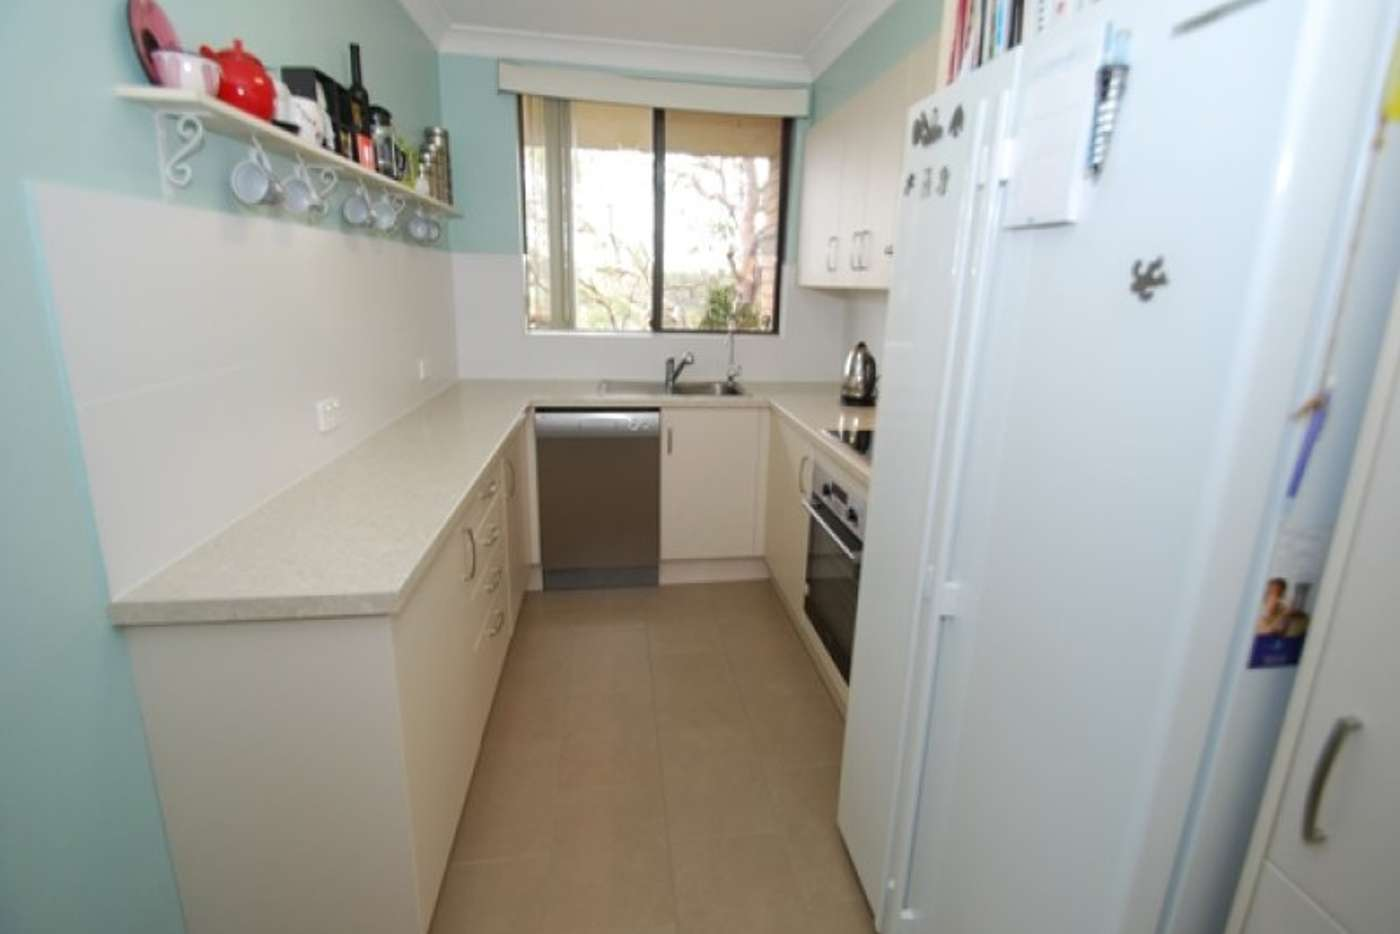 Seventh view of Homely unit listing, 34/215-217 PEATS FERRY ROAD, Hornsby NSW 2077